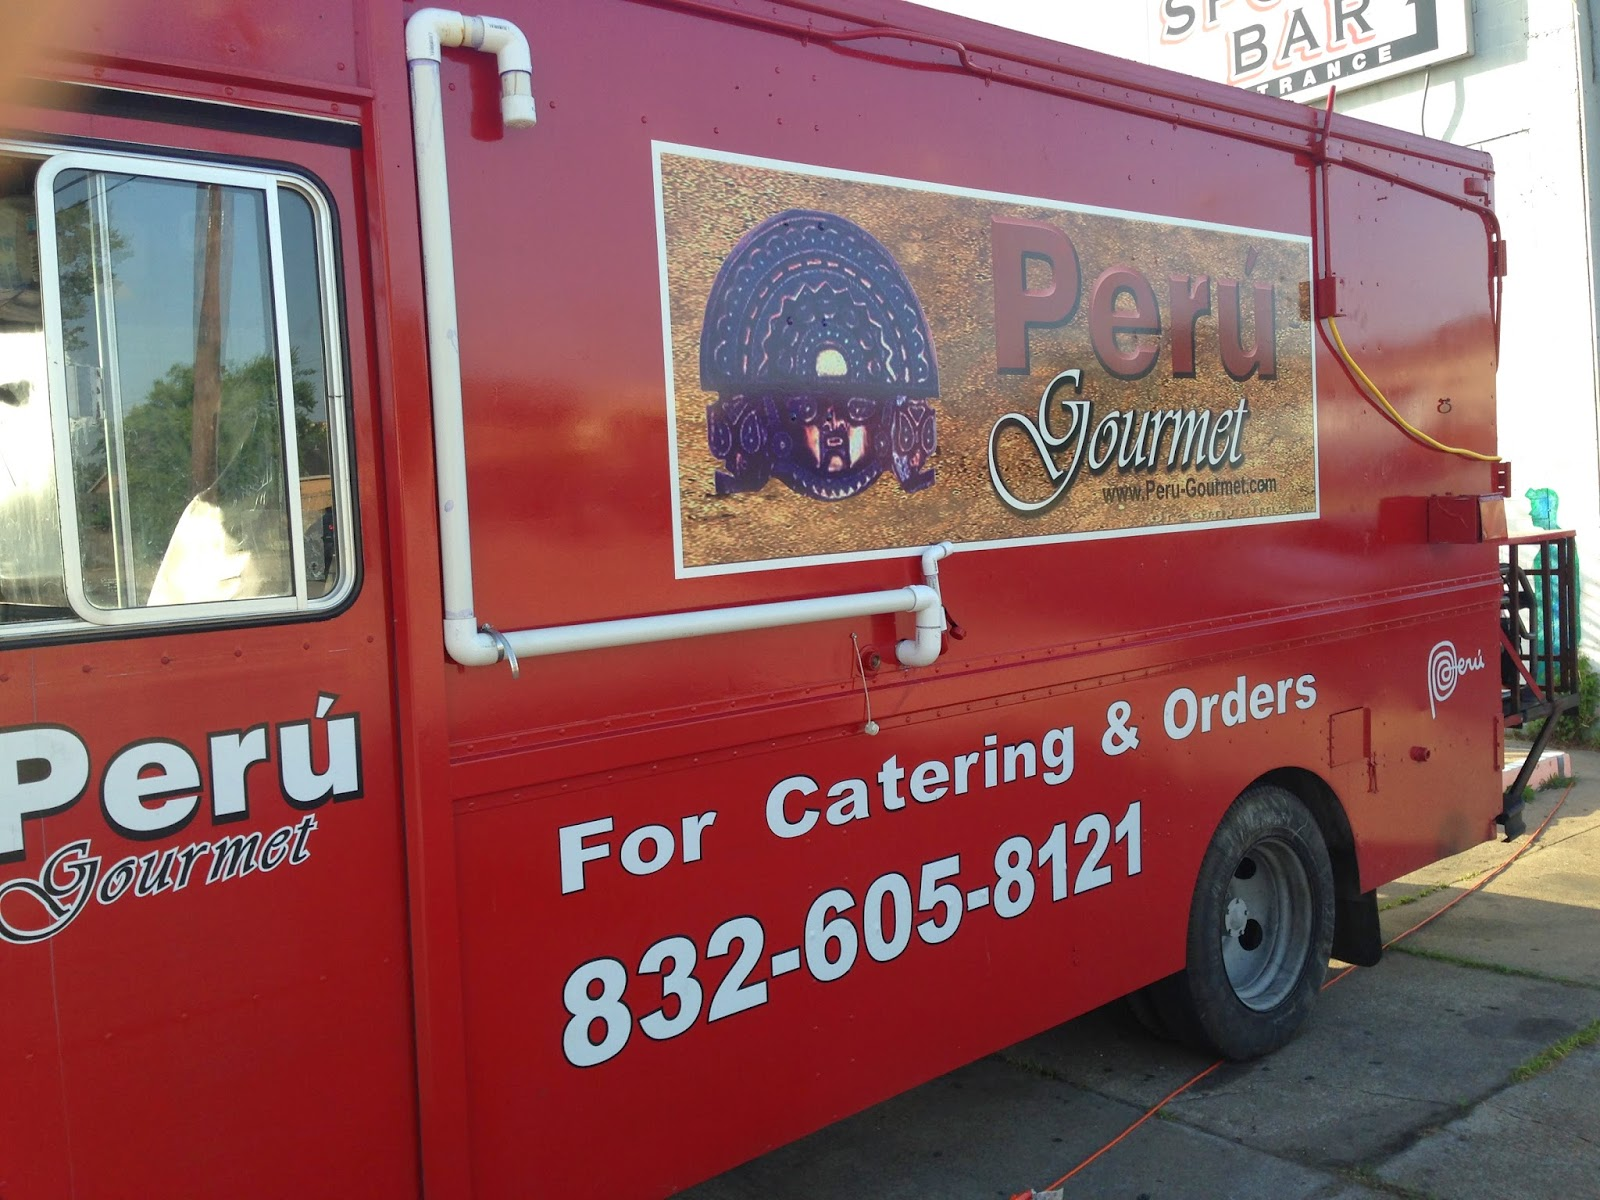 Peru Gourmet Food Truck Houston, TX